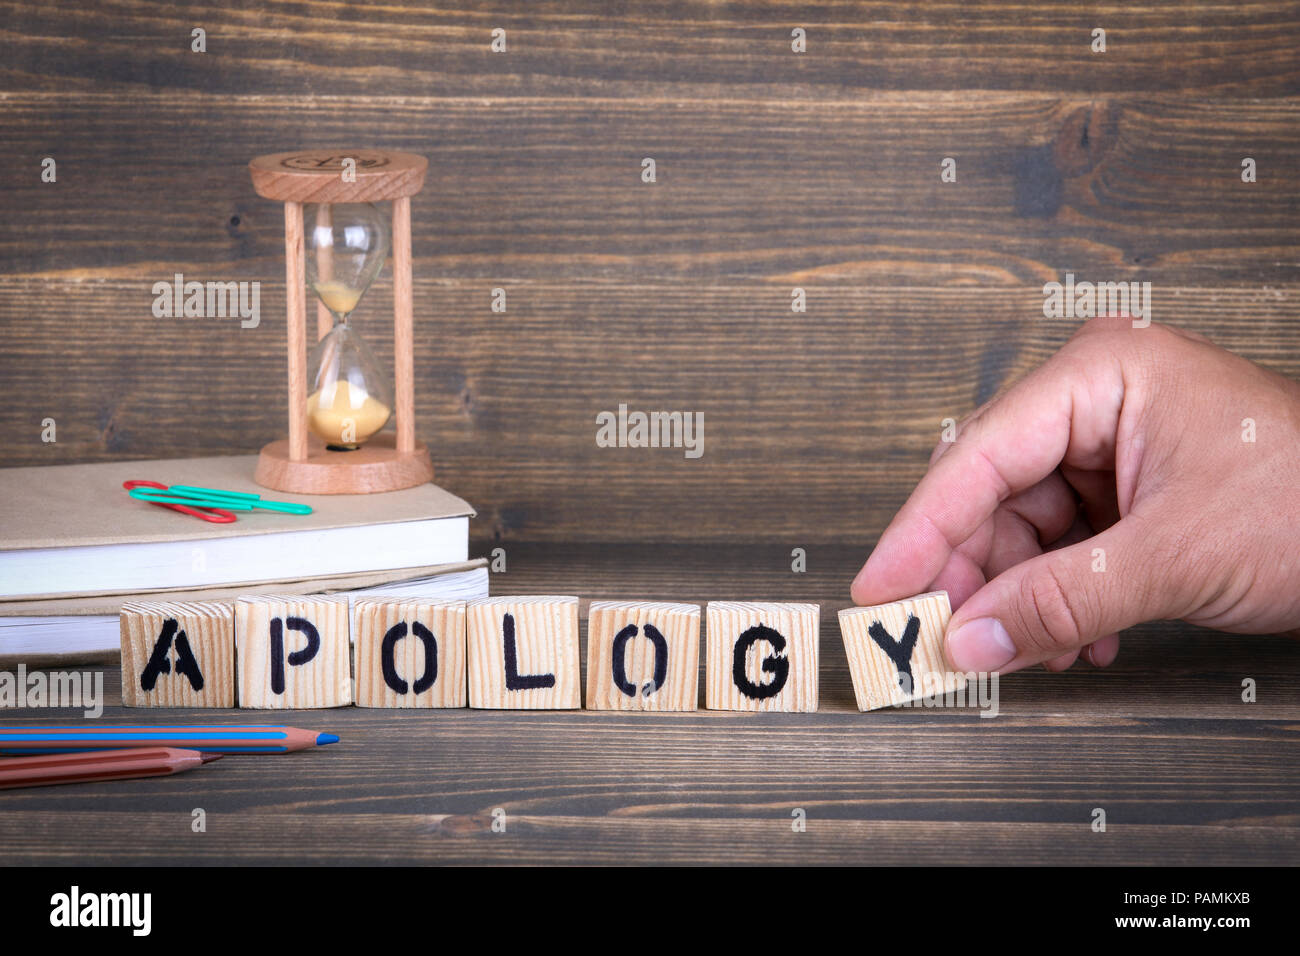 Apology. Wooden letters on the office desk - Stock Image